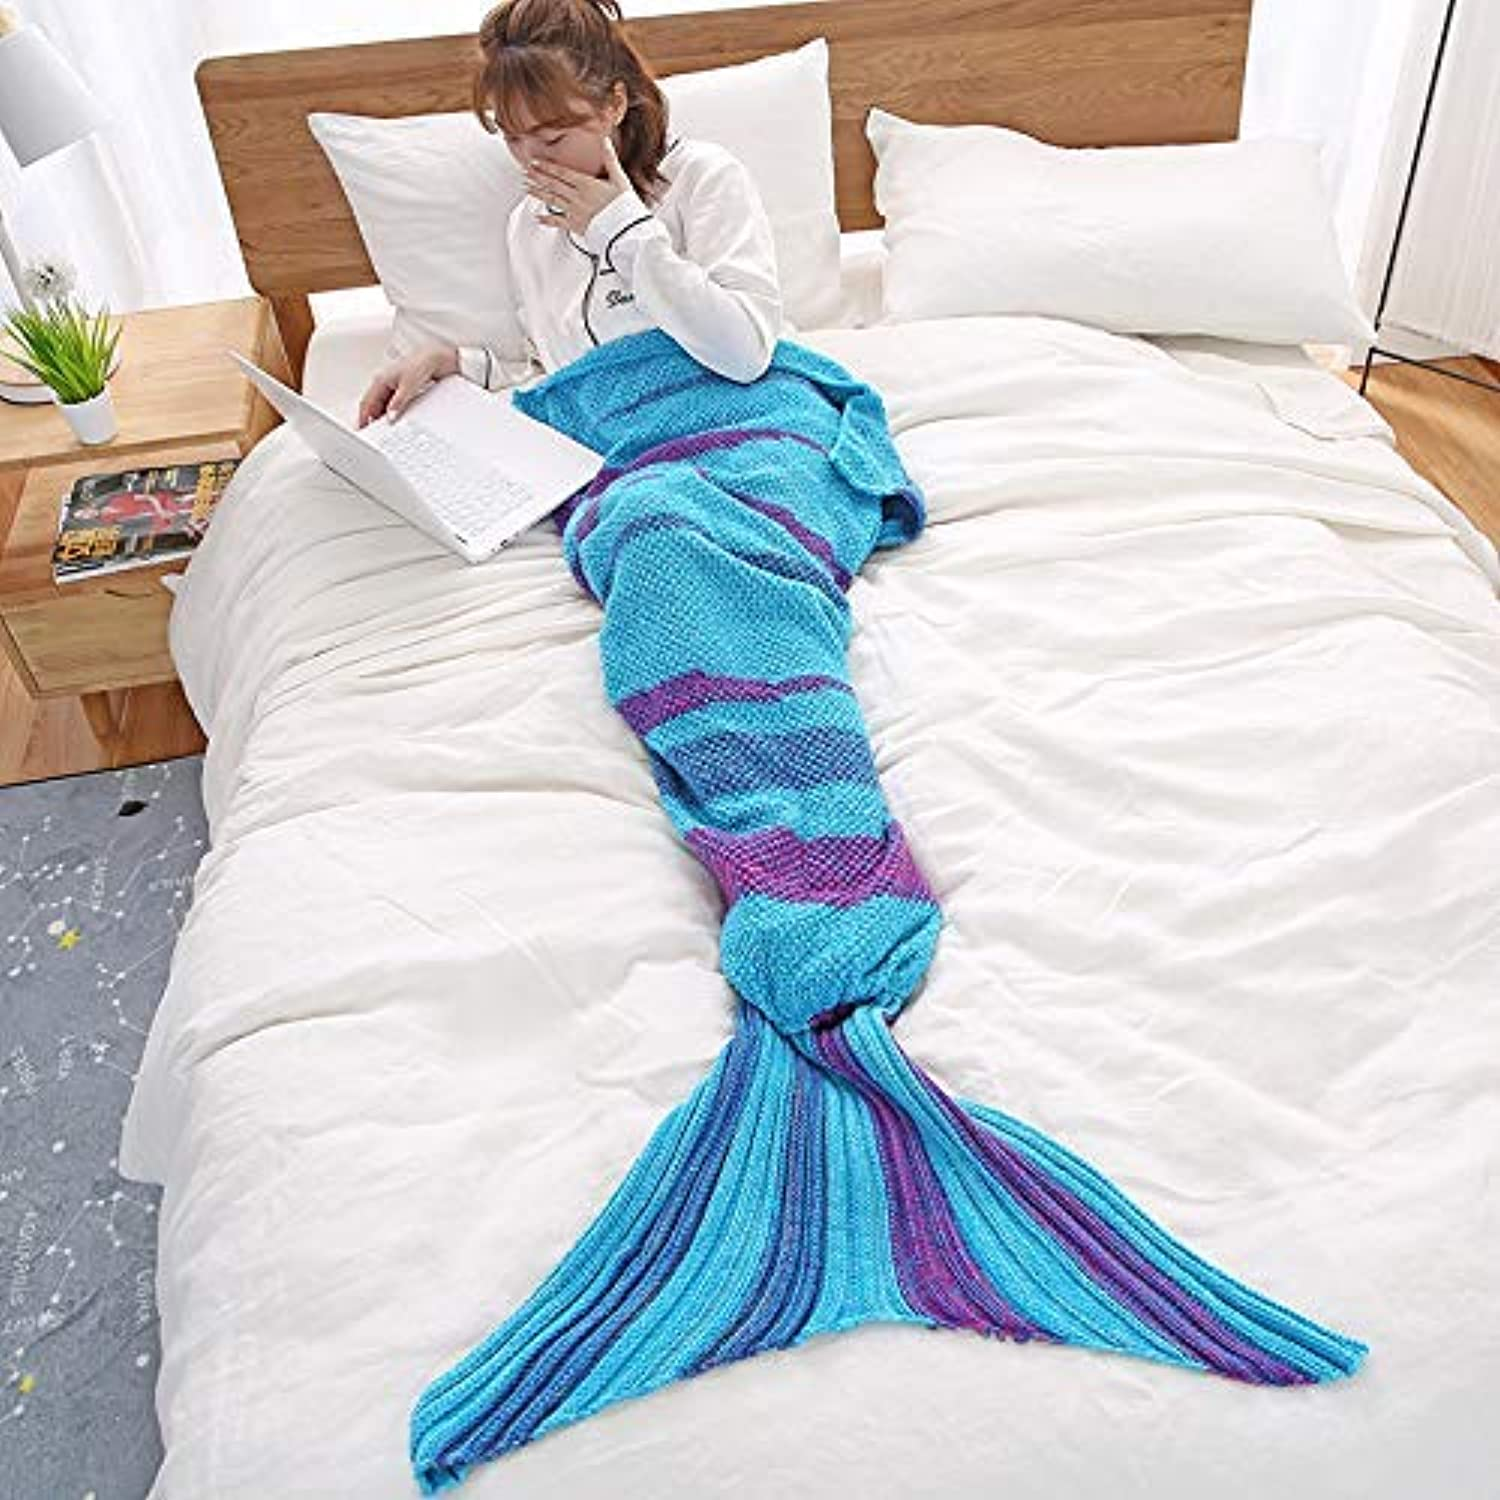 JINGB Home Mermaid Knit Mermaid Tail Knit Napping Air Conditioning, Lake bluee, 140  70CM 370G (55  27.5 inch) (color   Lake bluee, Size   190  90CM 570G)